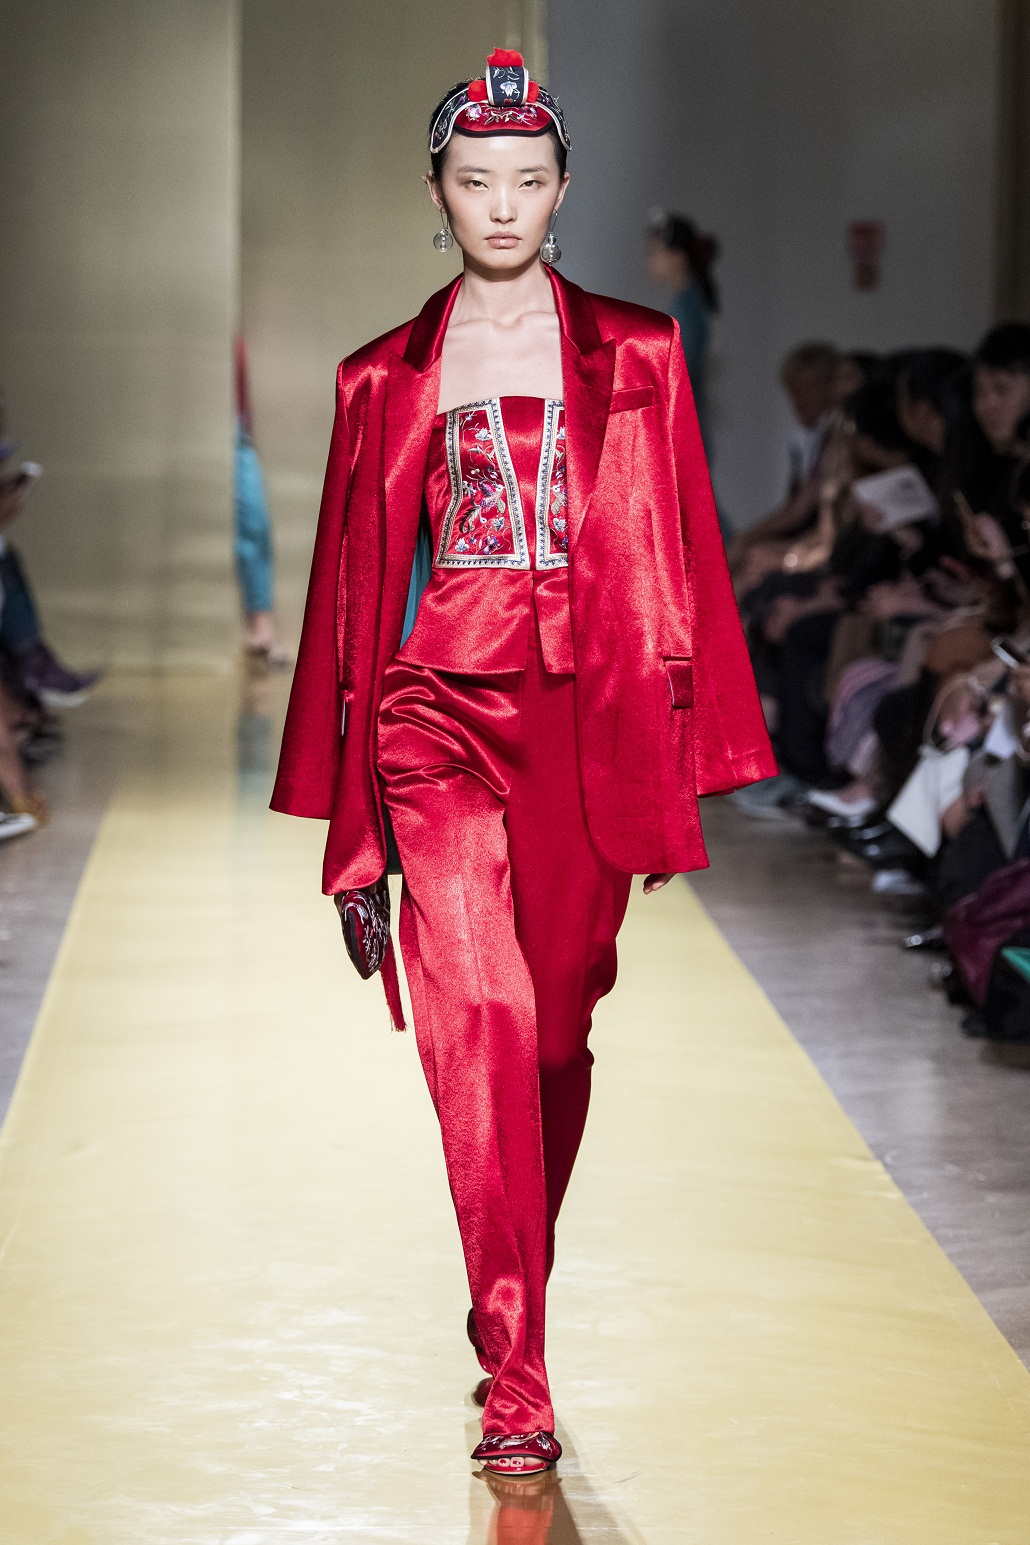 Designer Hui Zhou Zhao to support Milan during Covid19